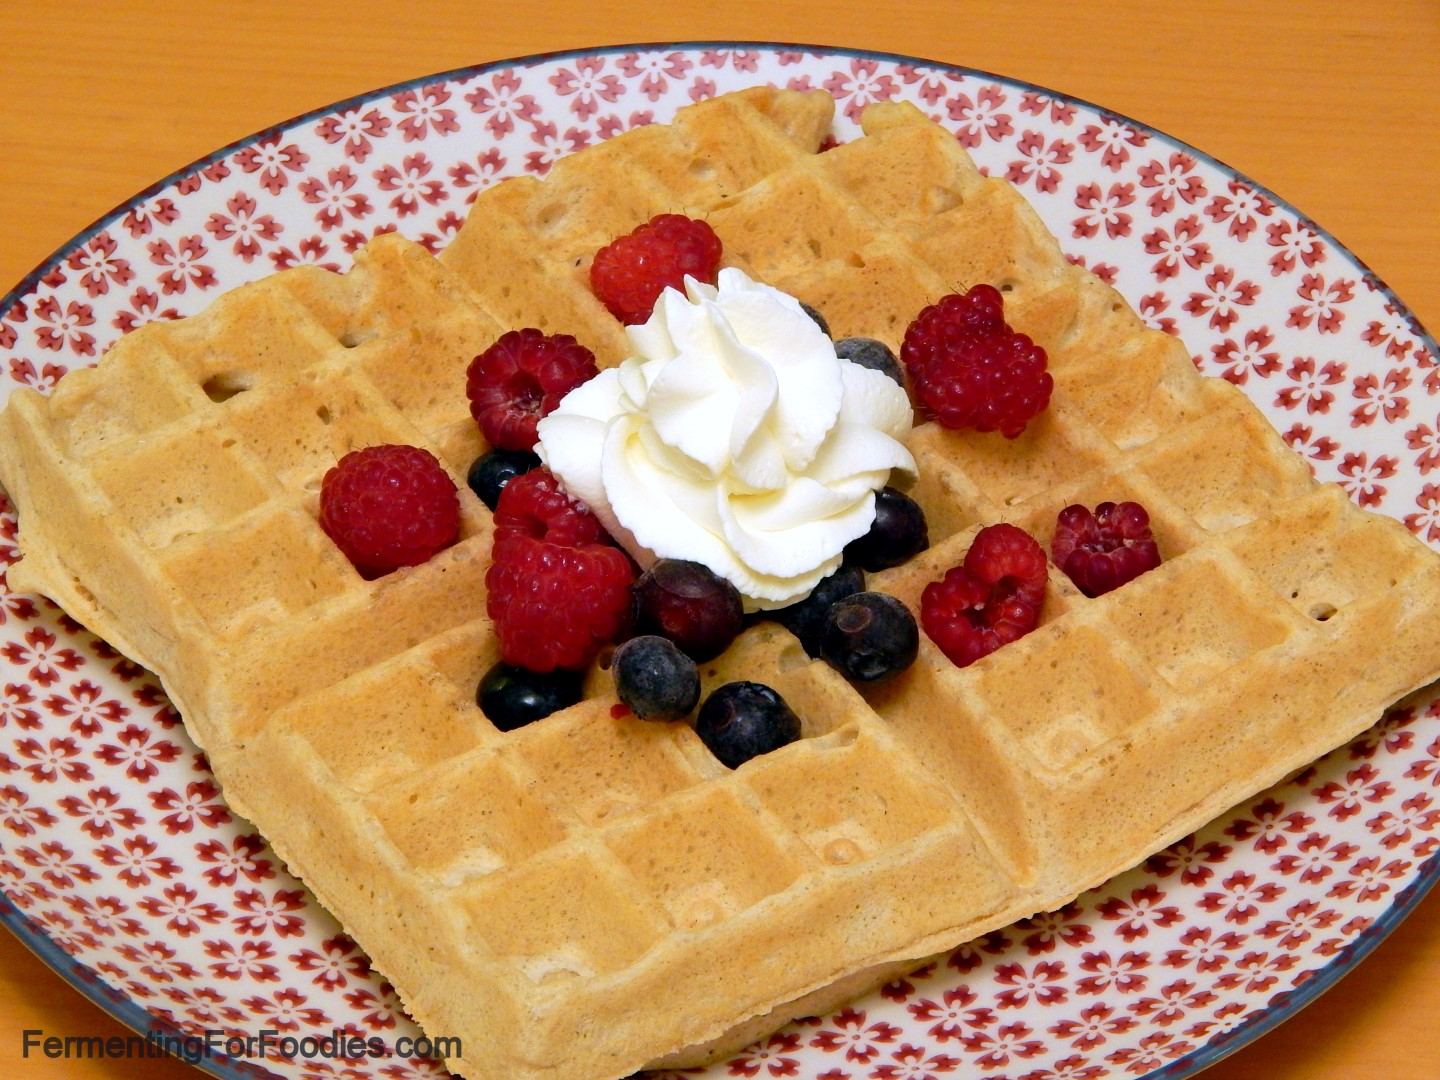 Gluten Free Sourdough Waffles with berries and whipped cream